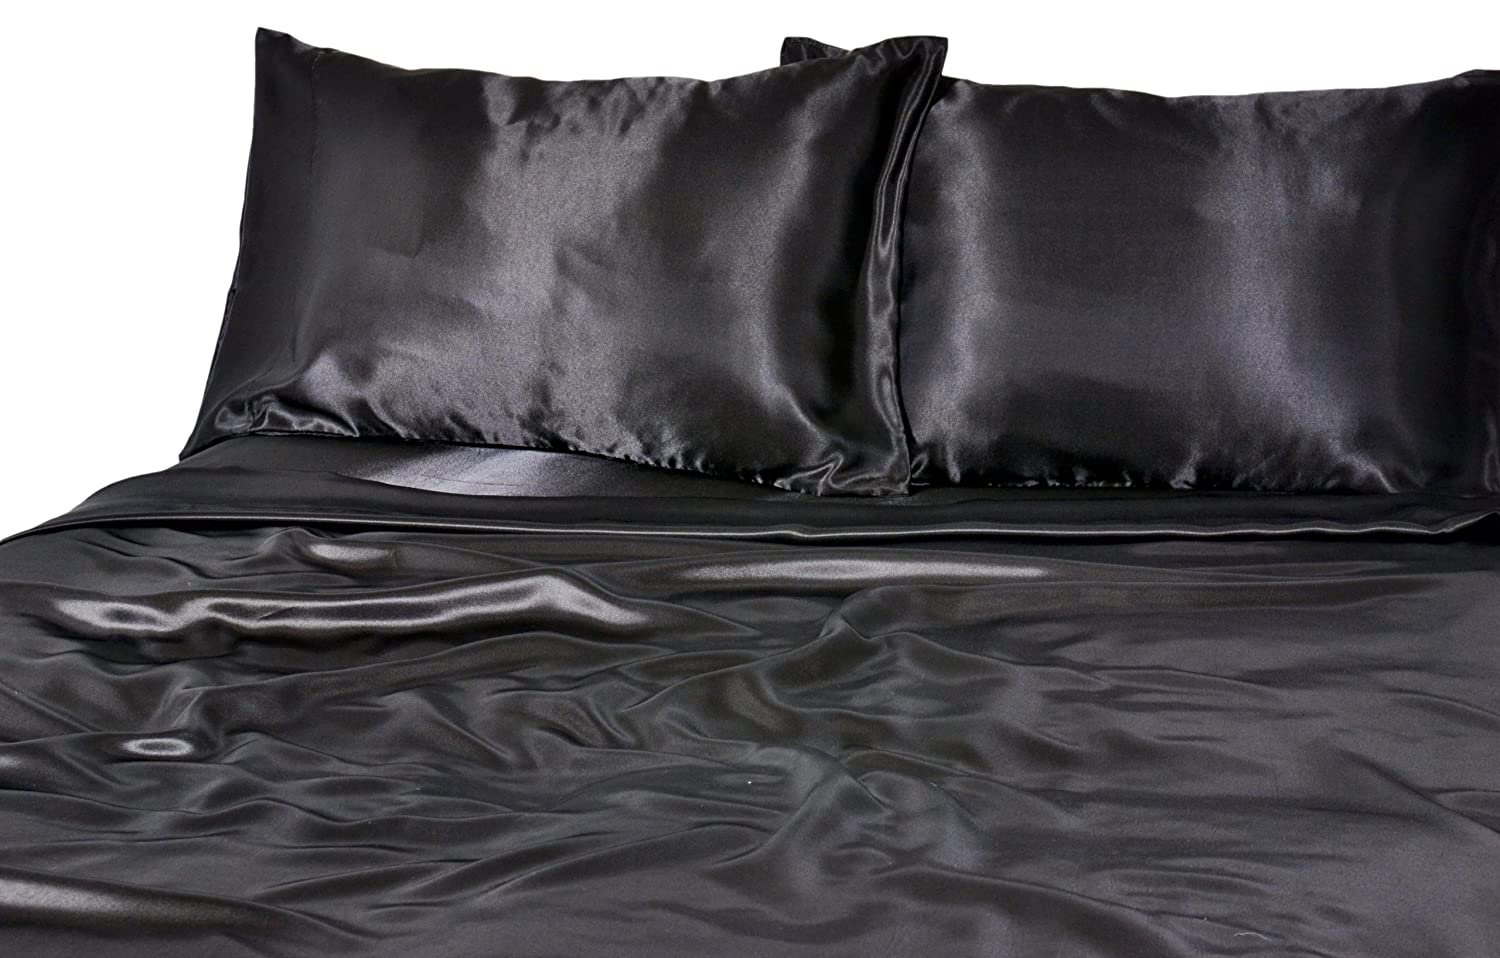 Elite Home Products 100% Luxury Satin Polyester Solid Sheet Set